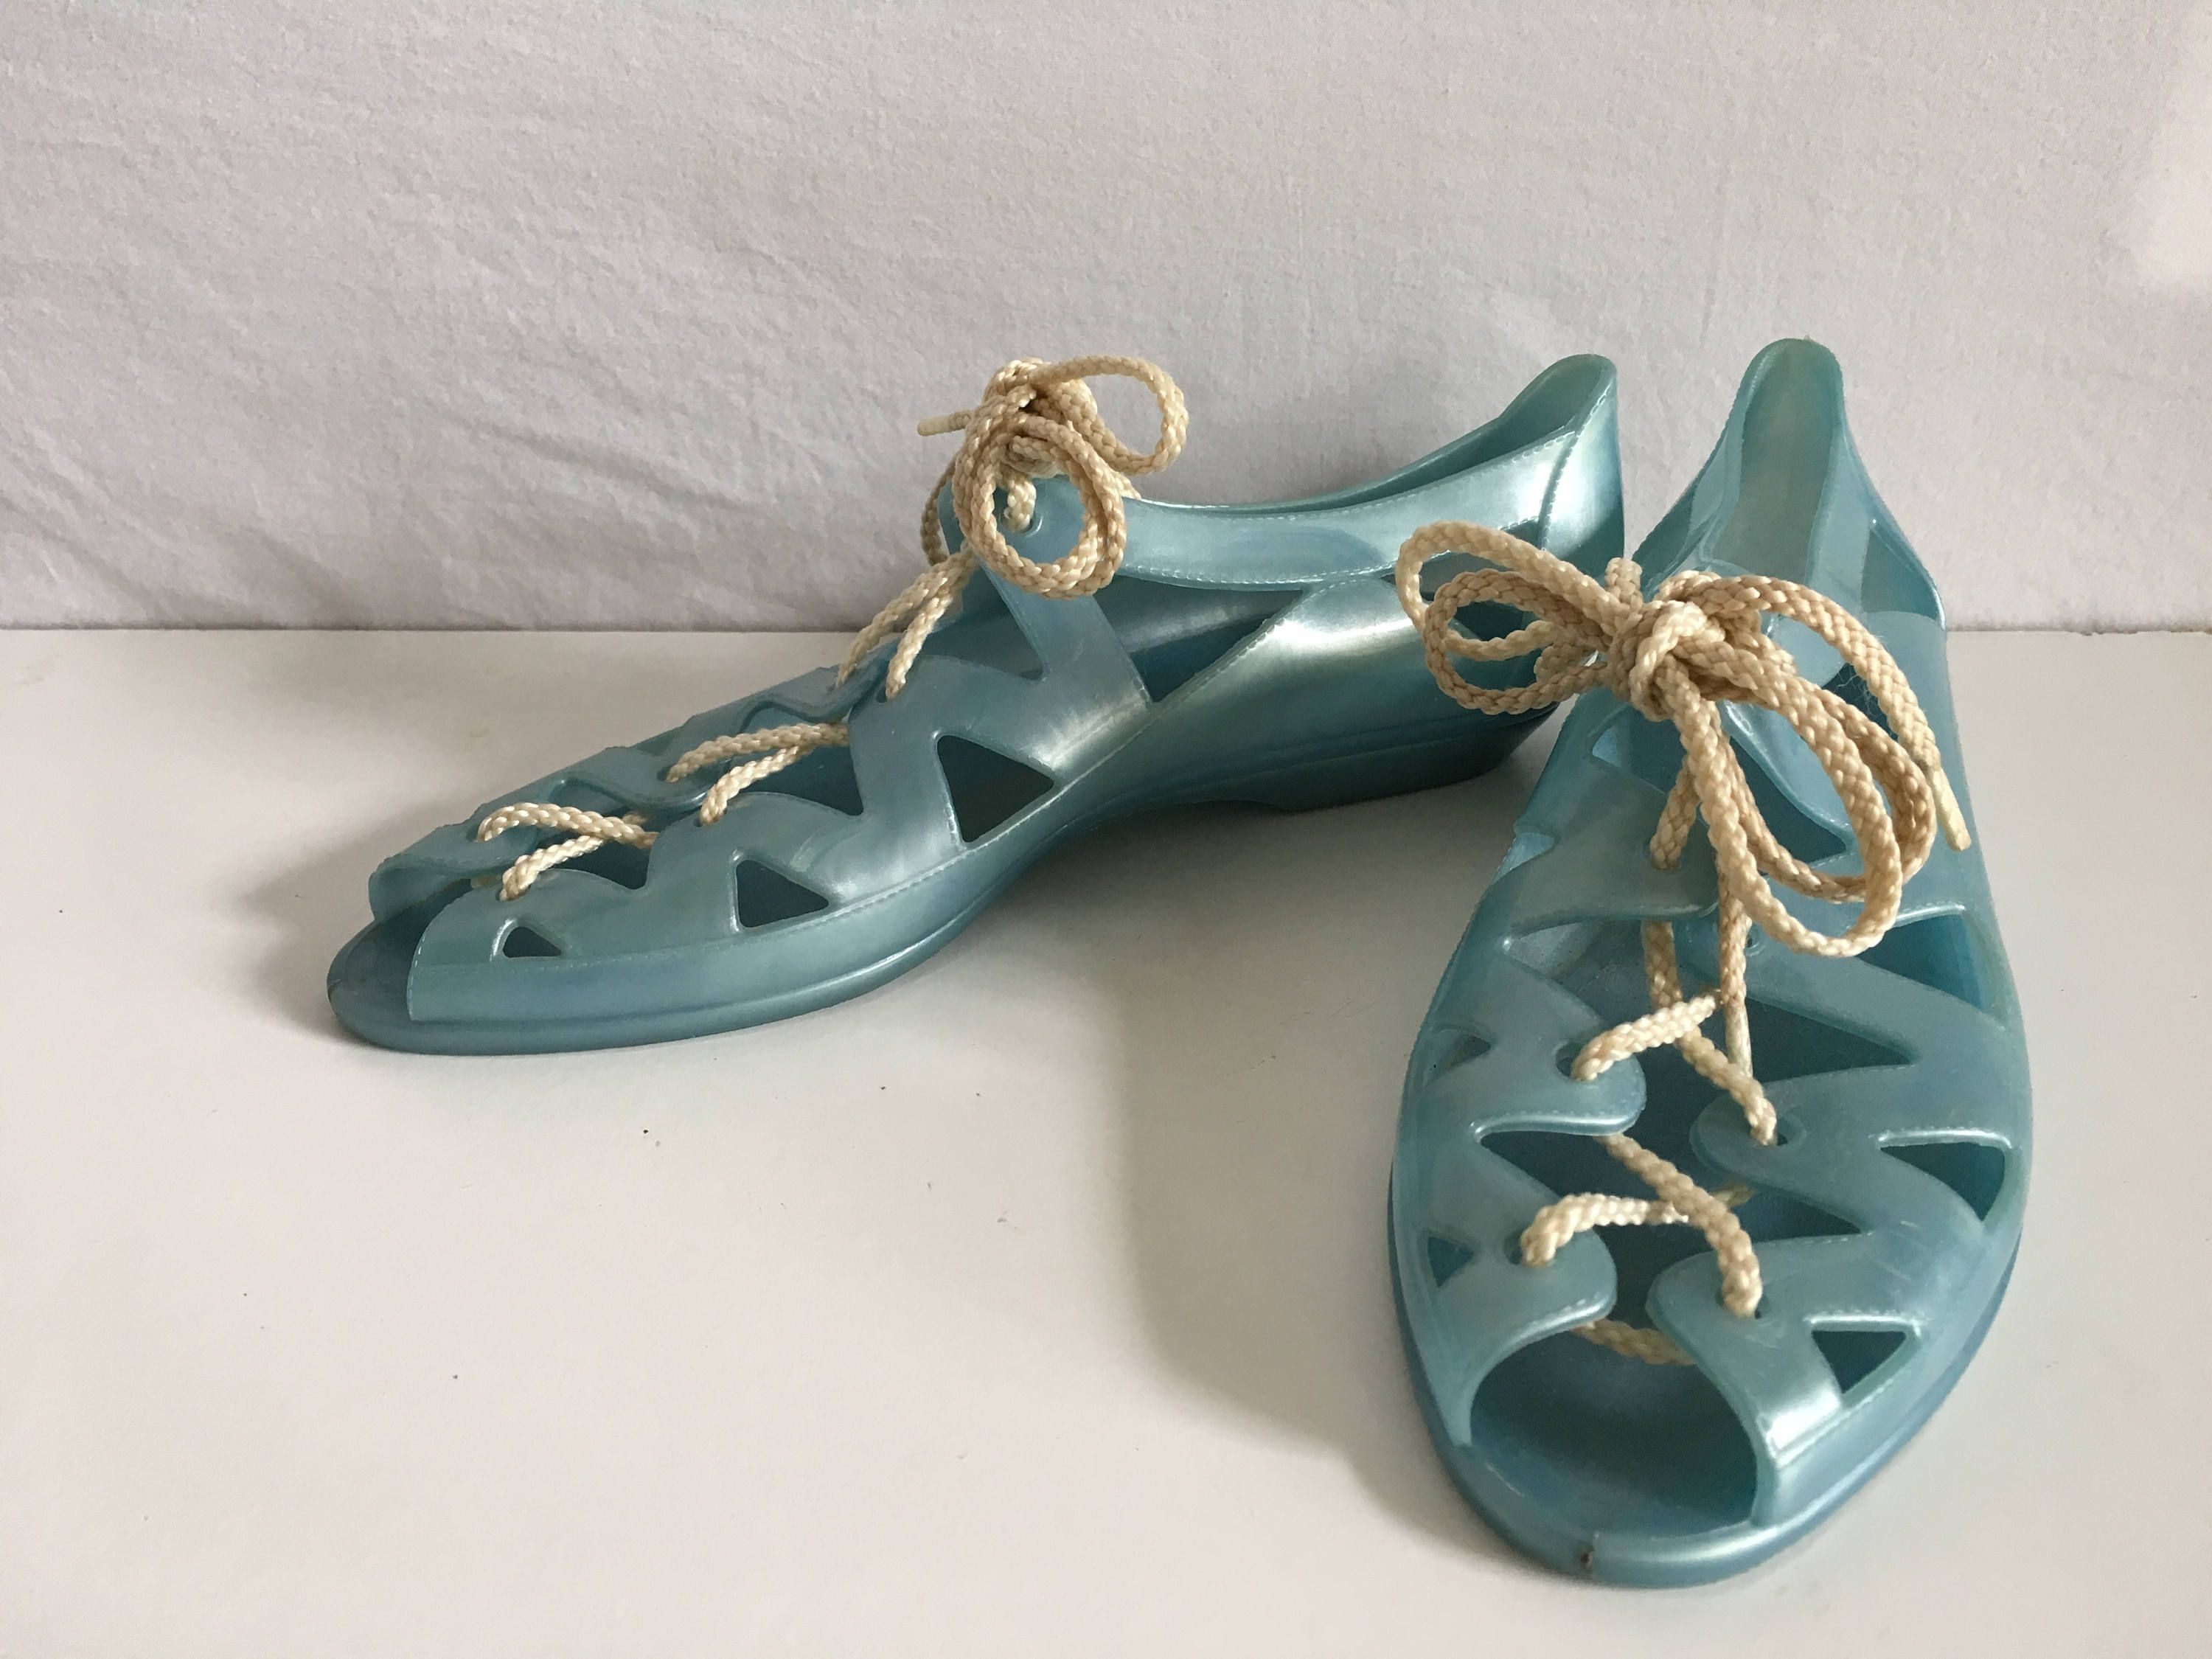 60b2246546f2 Vintage Shoes Women s 80 s Unworn